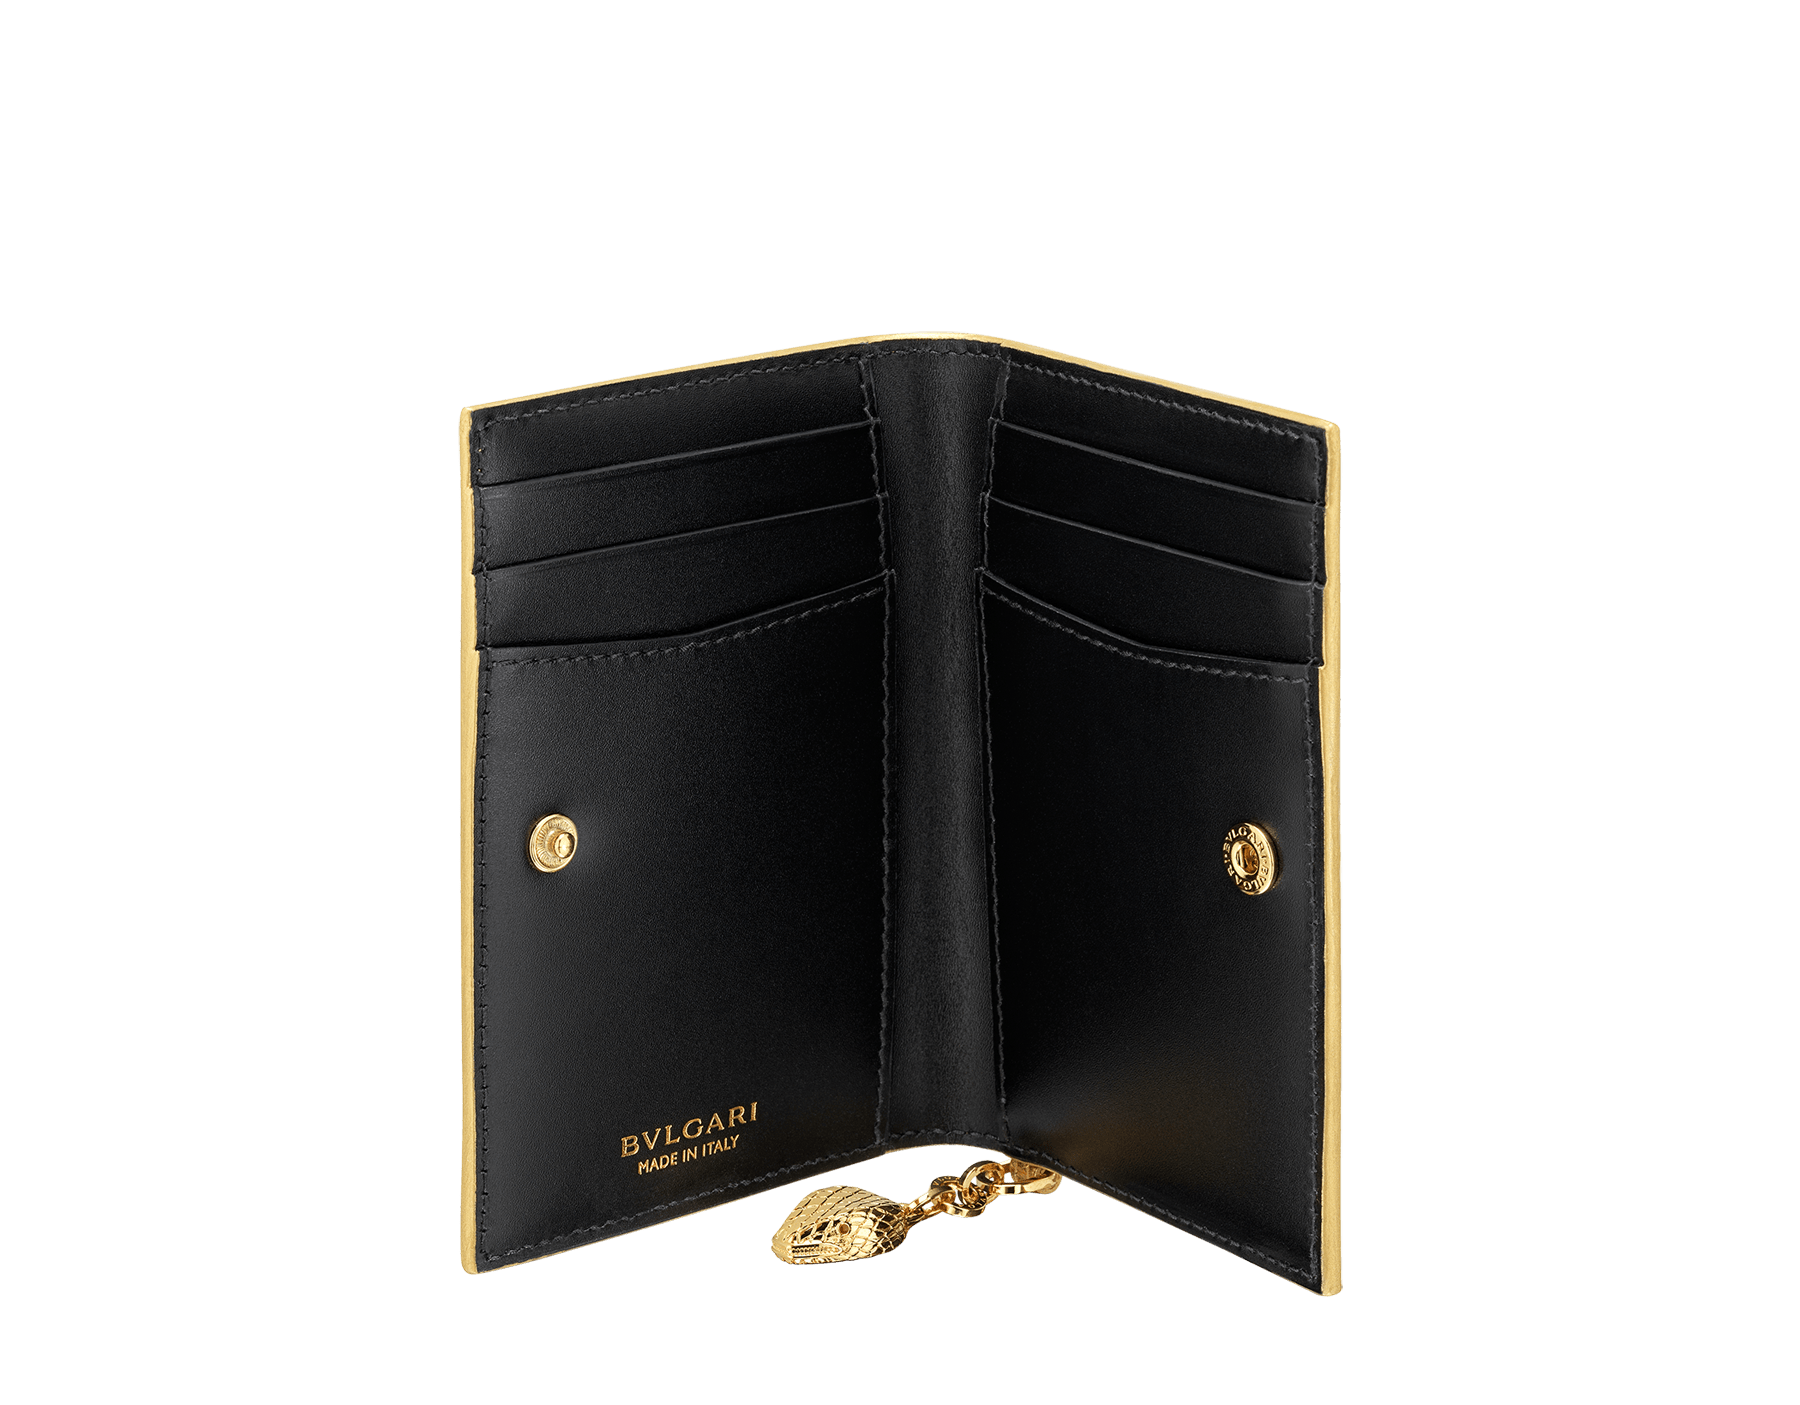 """Serpenti Forever"" bi-fold card holder in ""Molten"" gold karung skin and black calfskin, offering a touch of radiance for the Winter Holidays. New Serpenti head charm in gold-plated brass, complete with ruby-red enamel eyes. 290512 image 2"